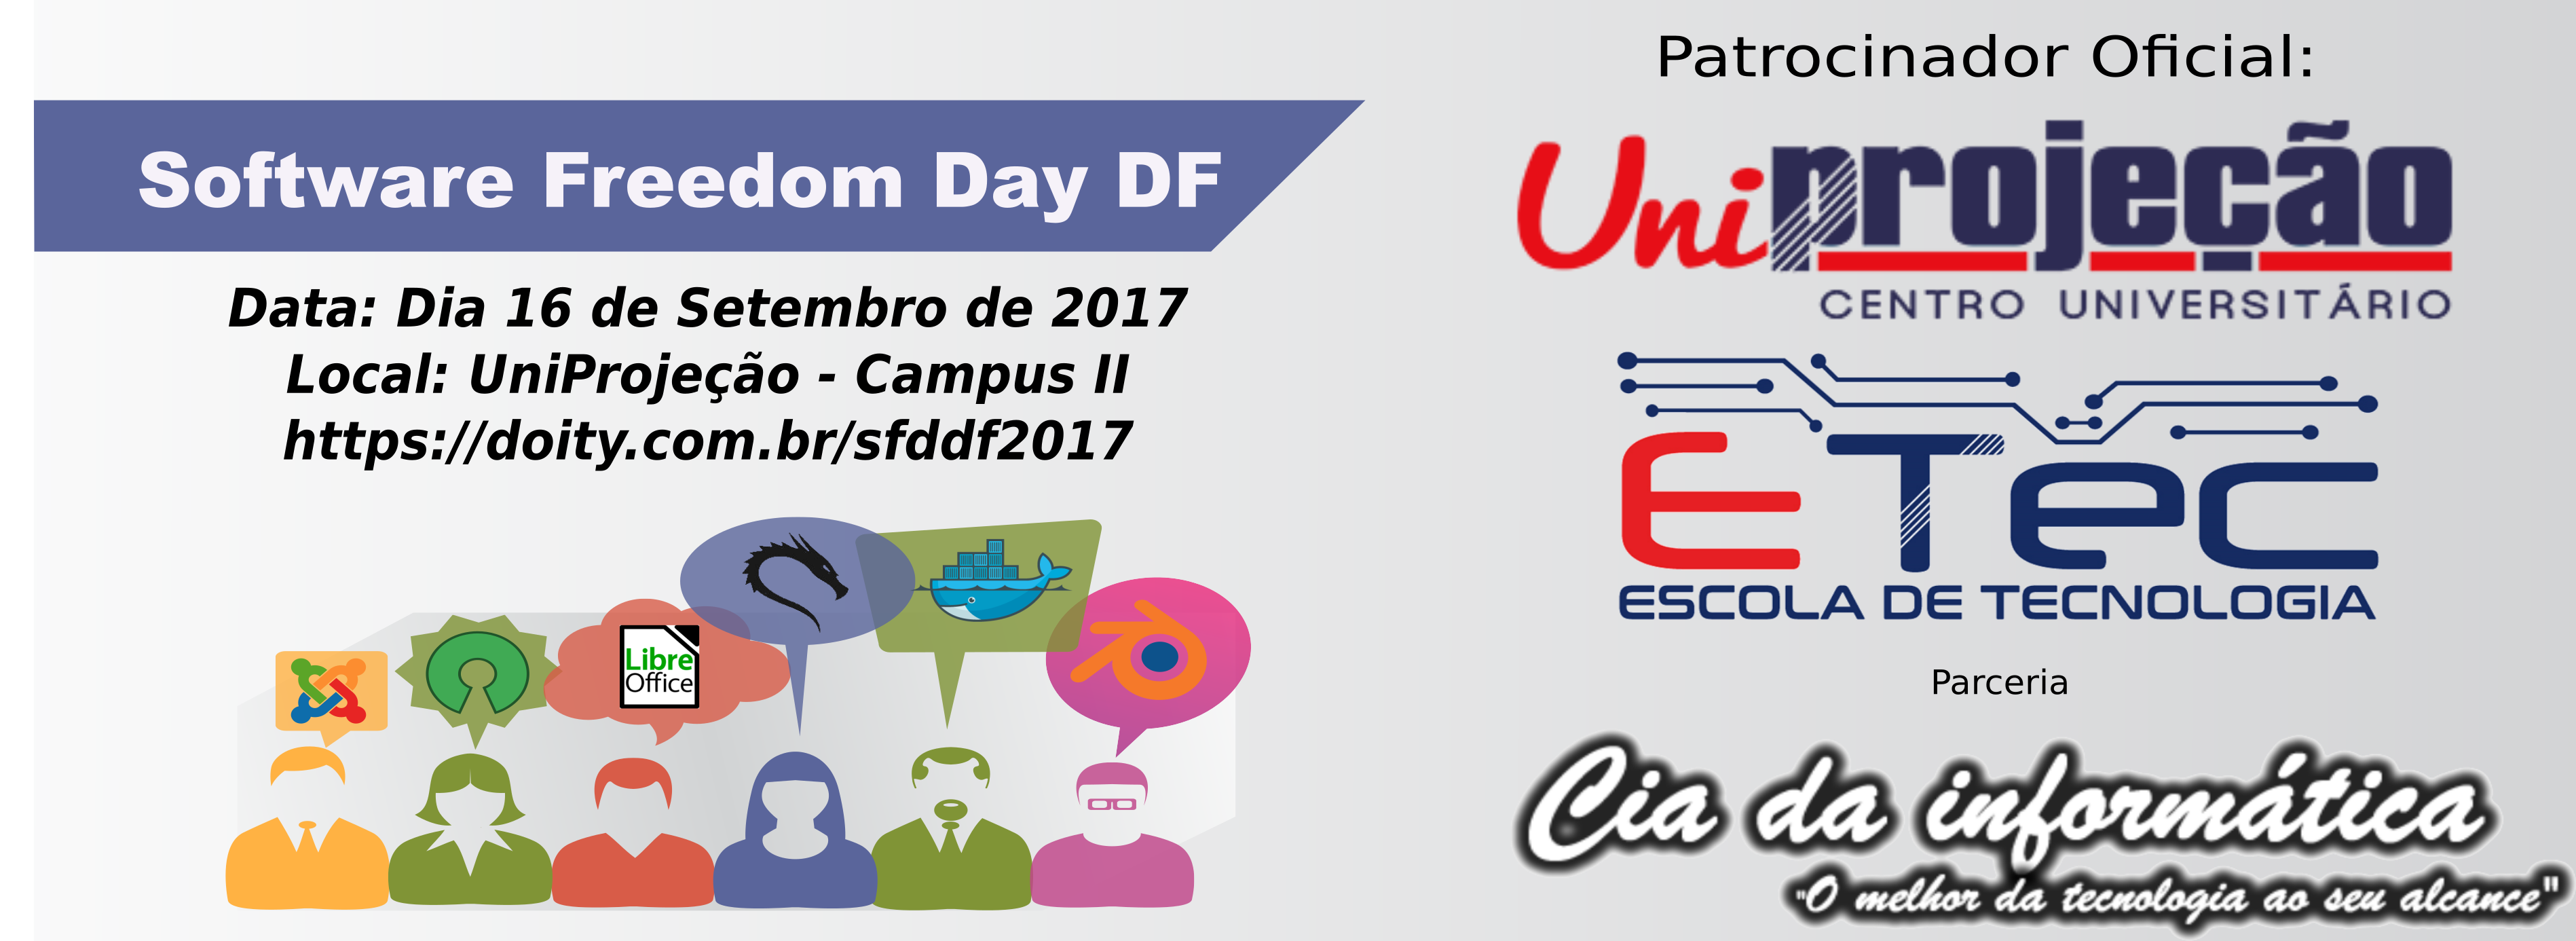 Software Freedom Day DF 2017